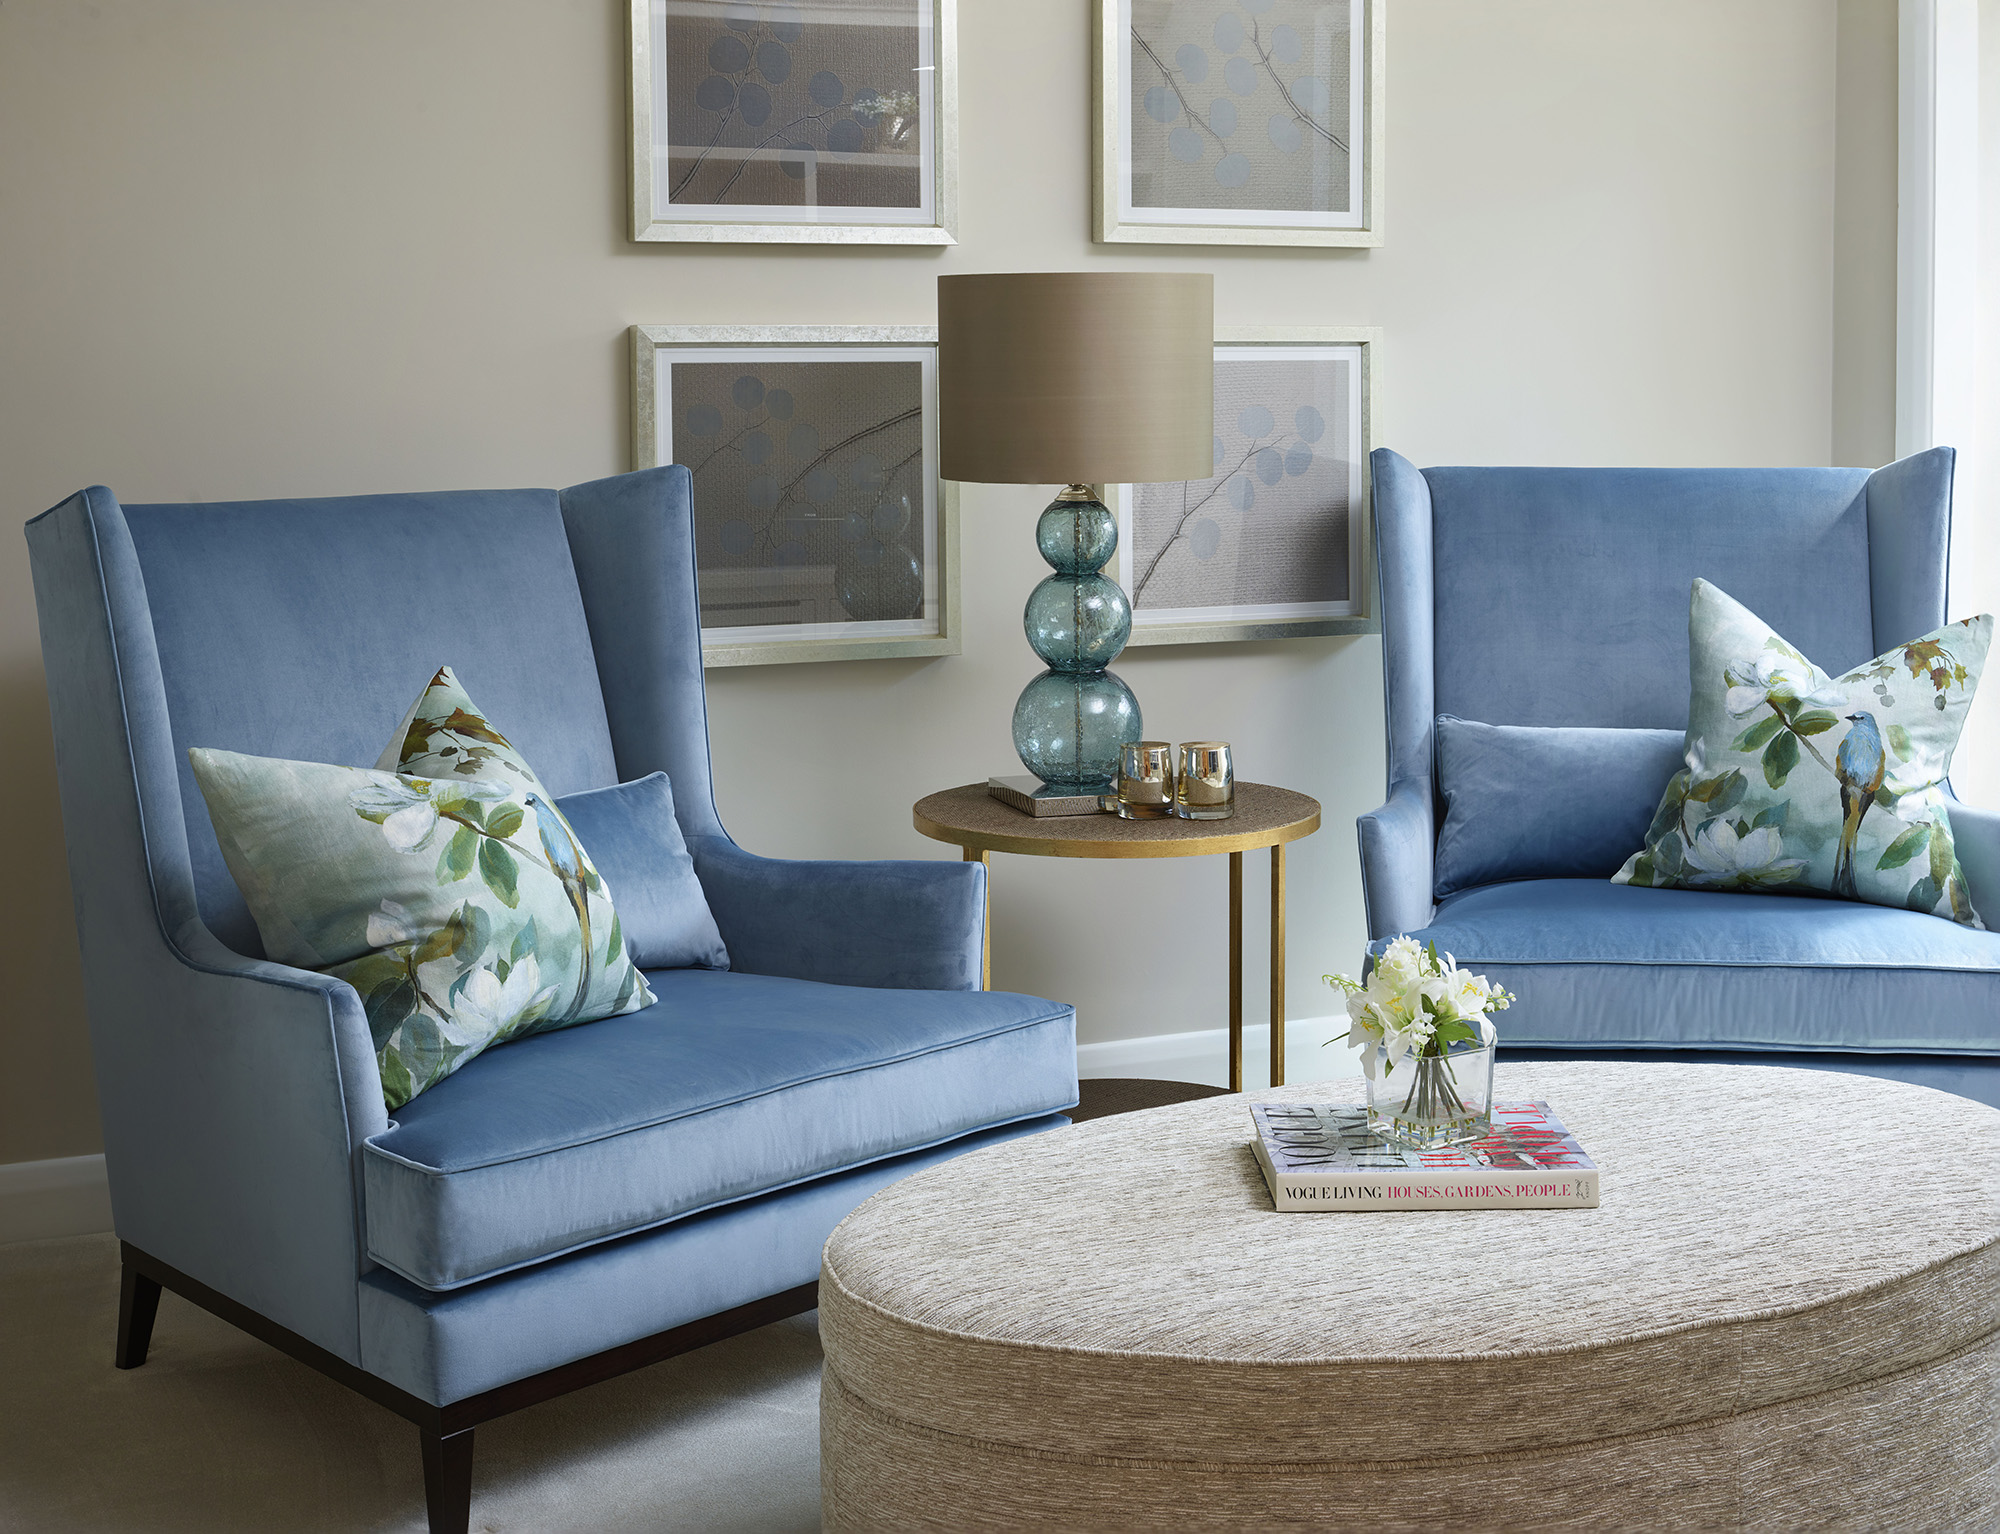 Blue Armchairs and Fabric Covered Coffee Table